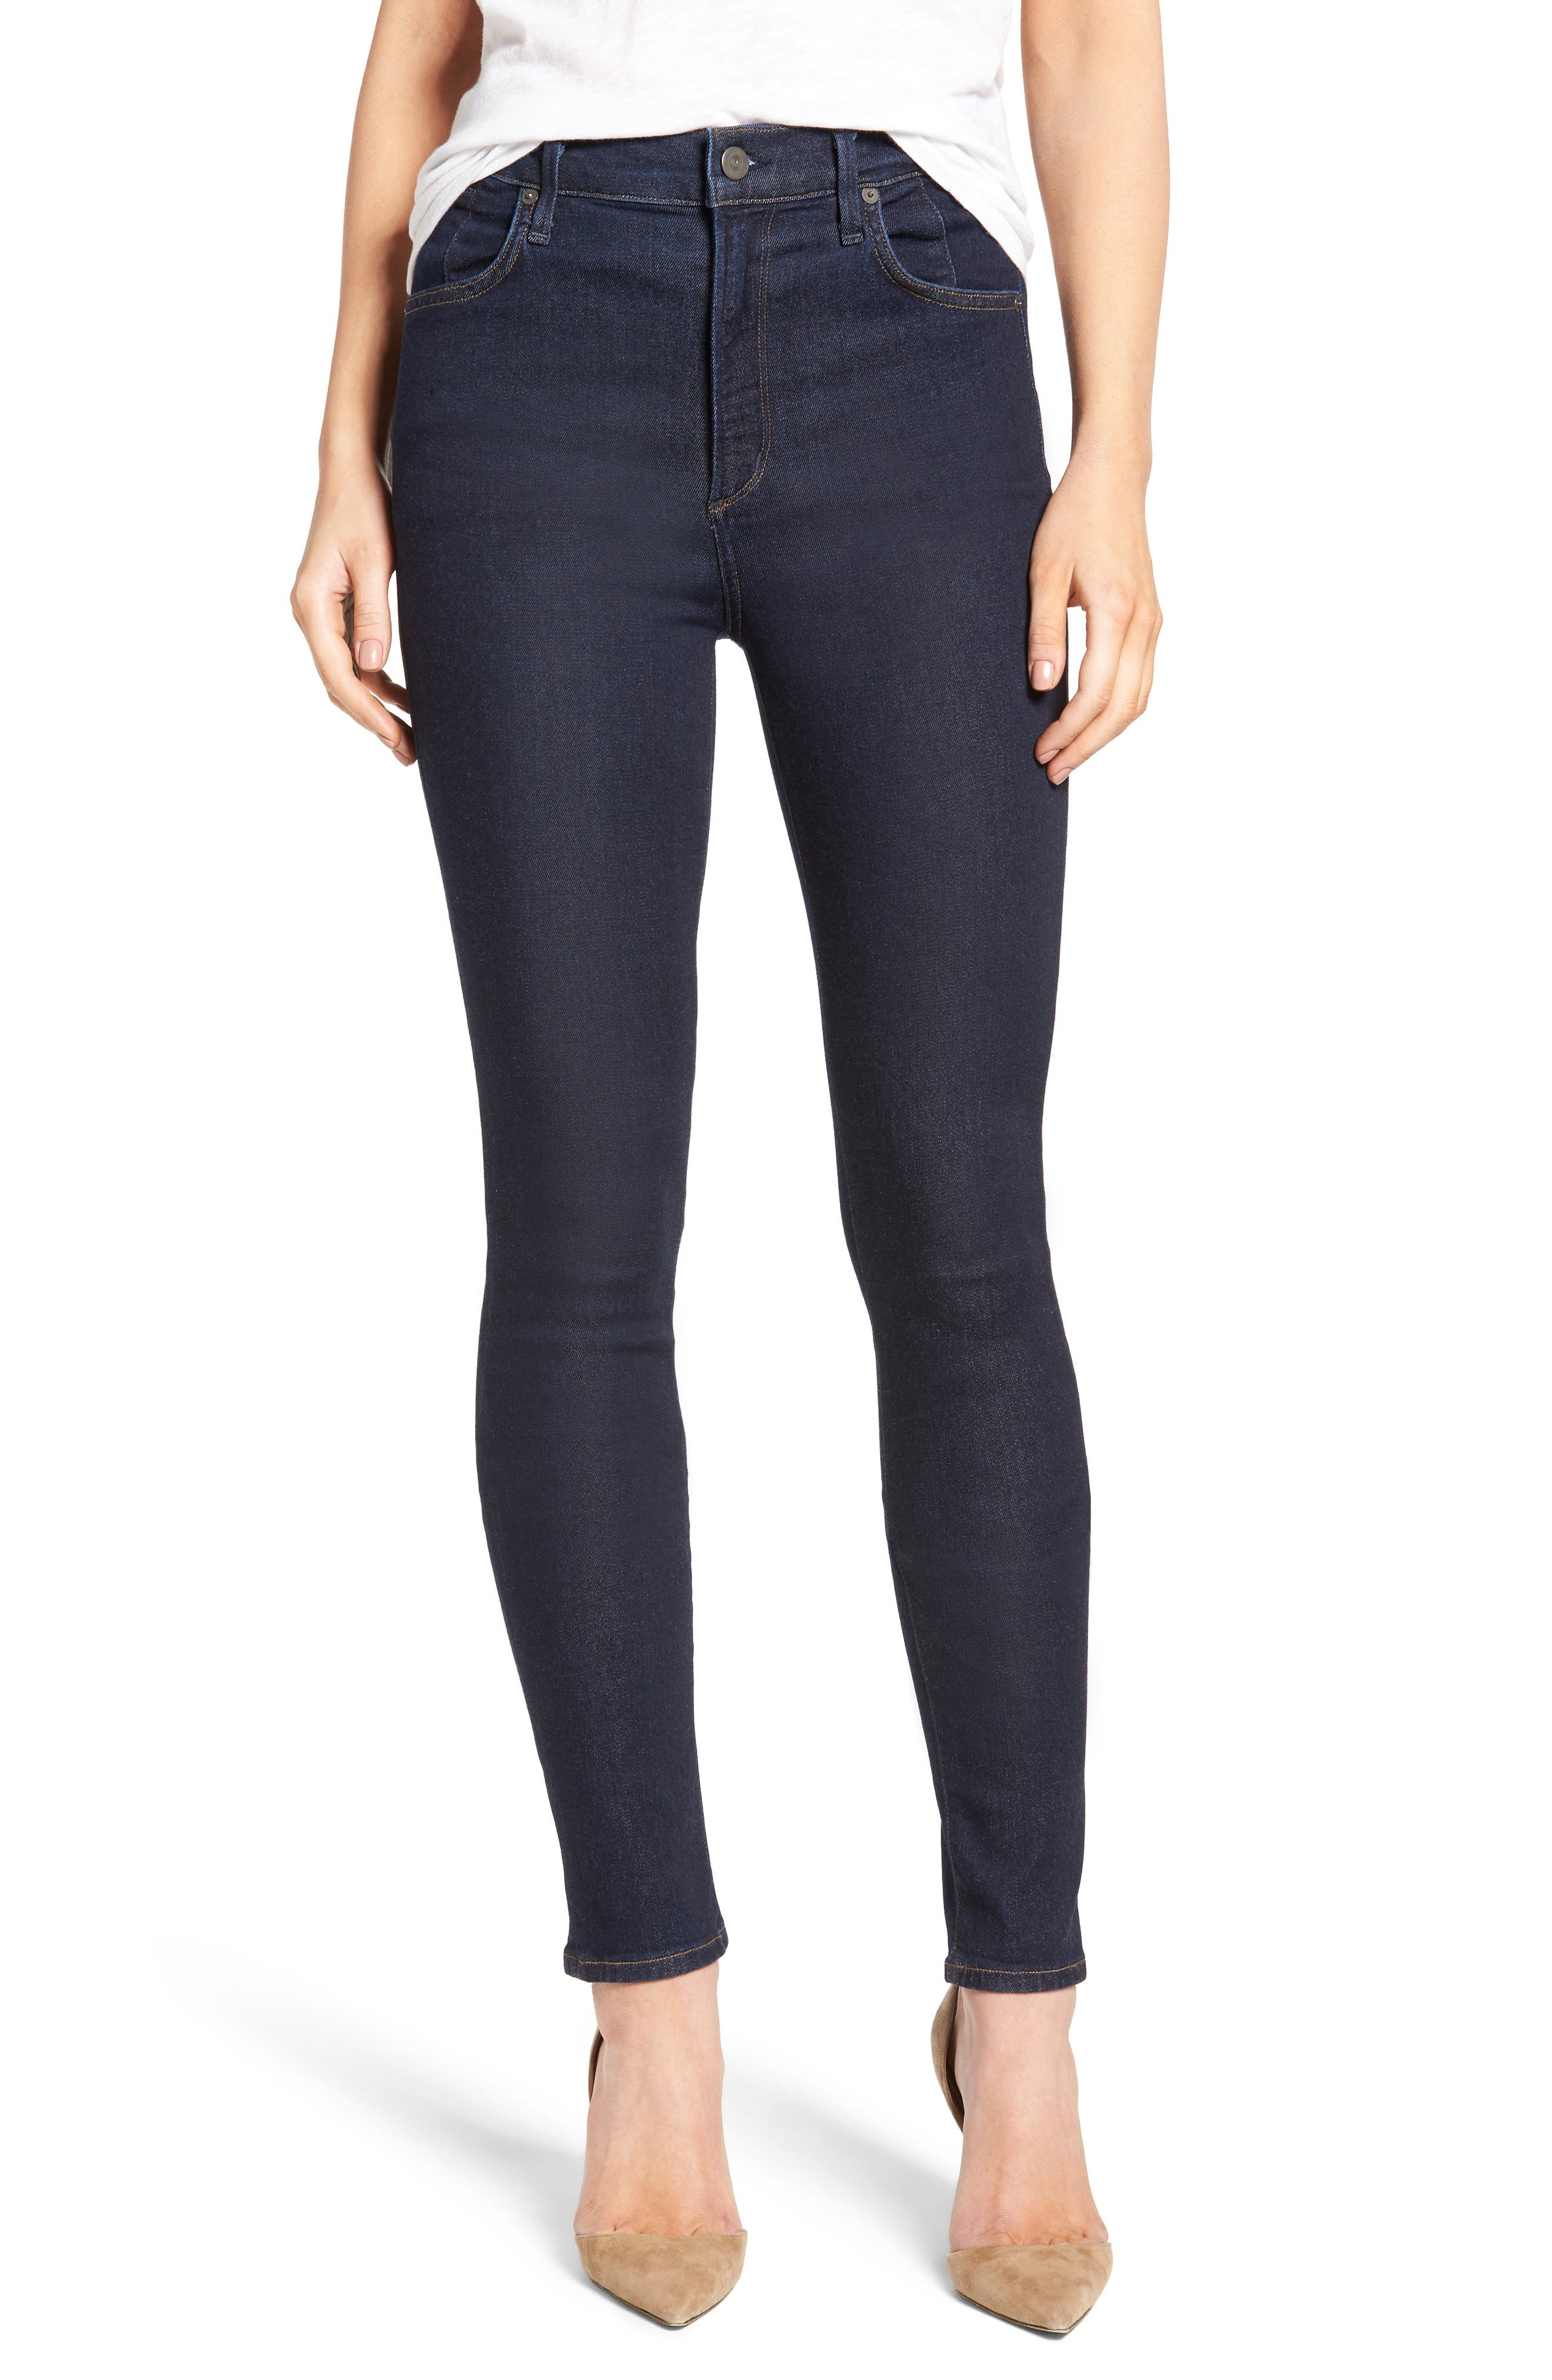 Carlie High Waist Skinny Jeans,                             Main thumbnail 1, color,                             OZONE RINSE